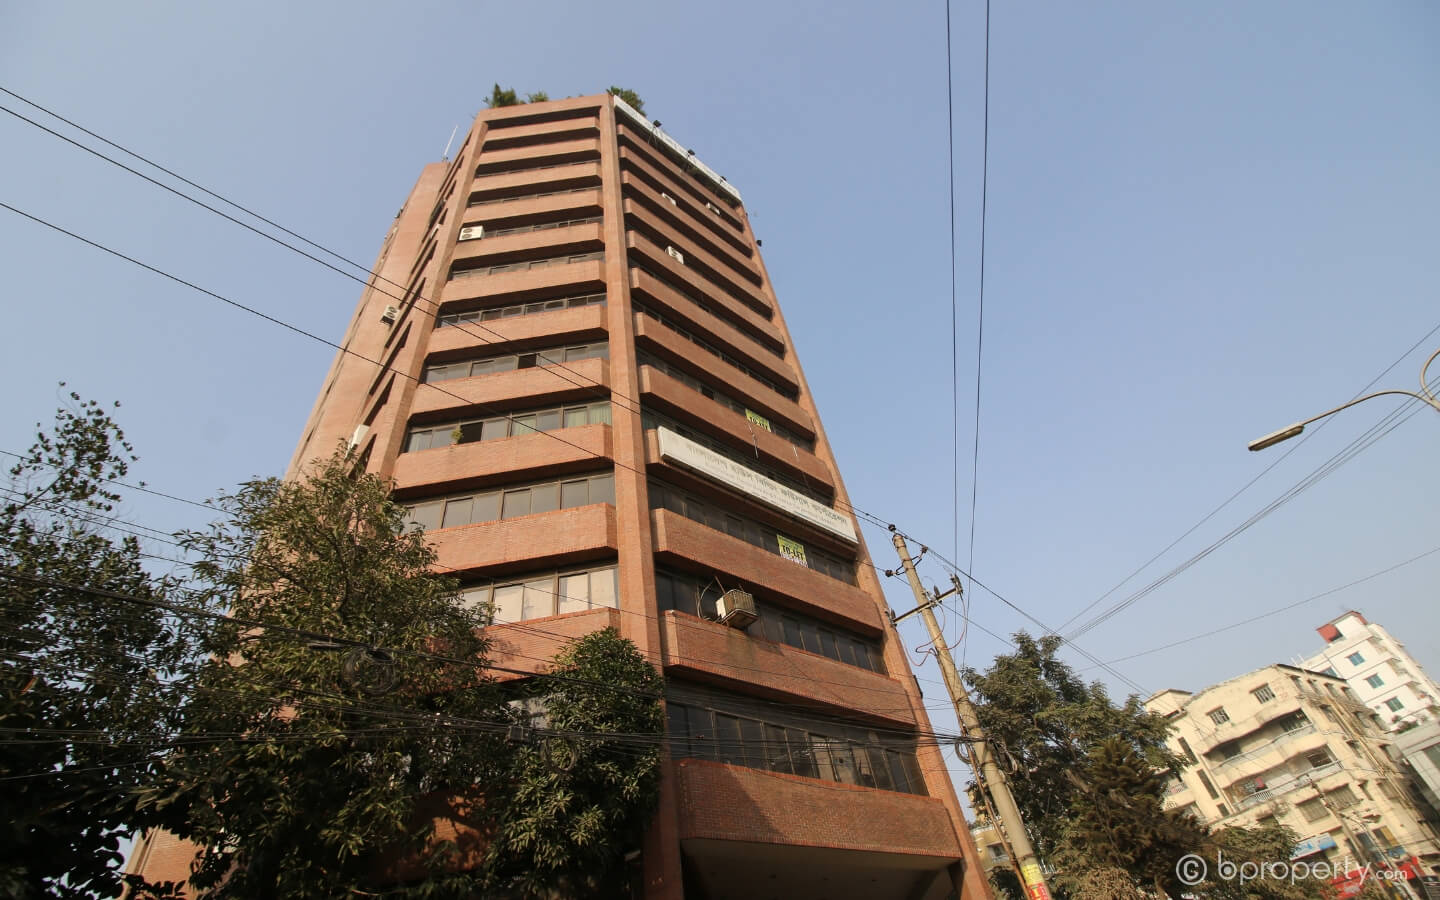 The highly-populated Mirpur area is perfect for many organizations to set up offices in Dhaka